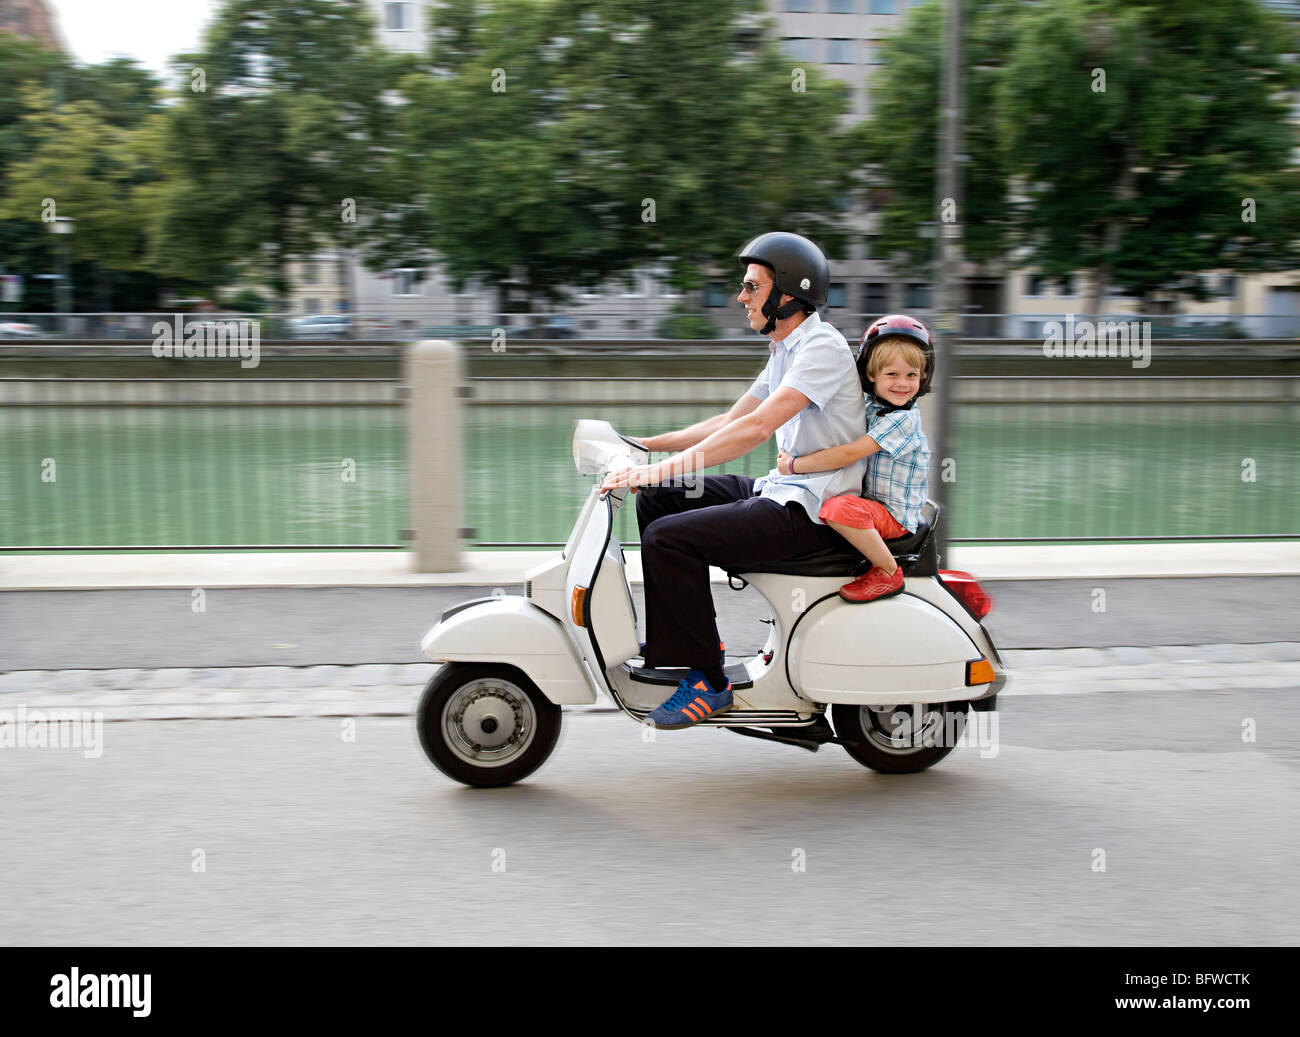 Père et fils en scooter Photo Stock